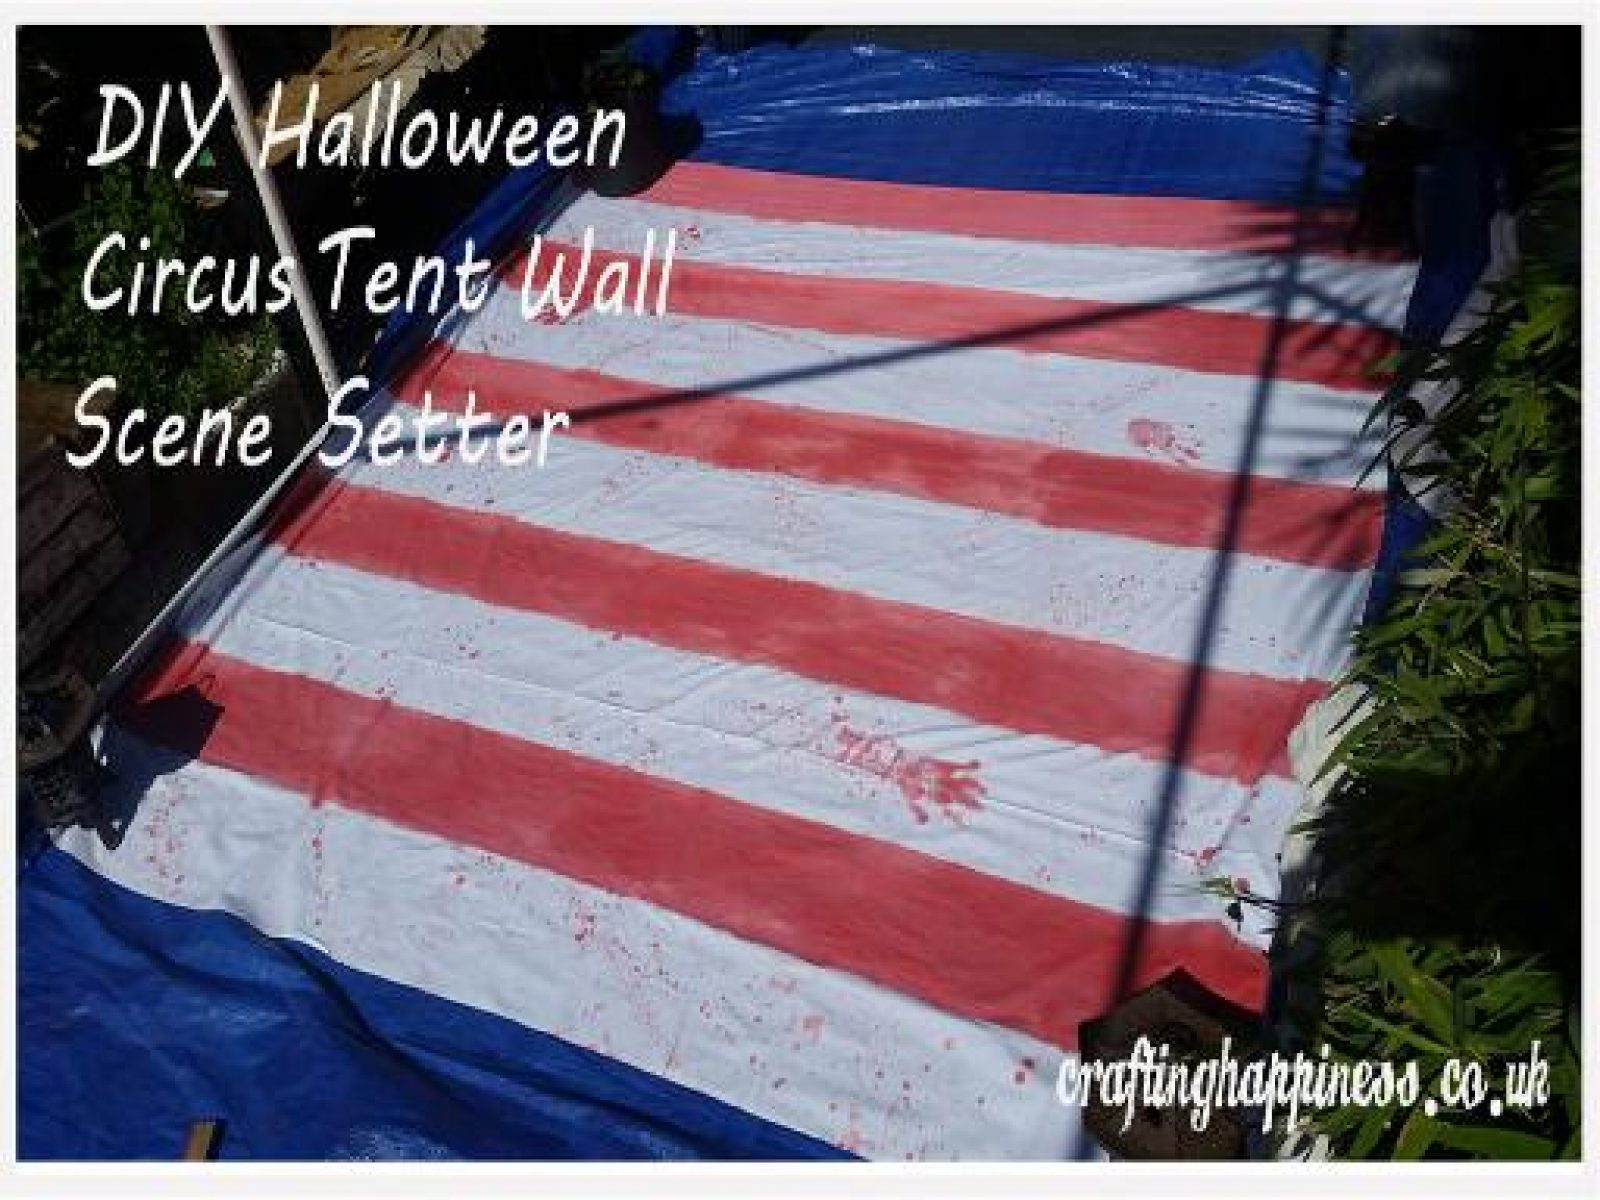 How to Make a Halloween Circus Tent Wall Scene Setter